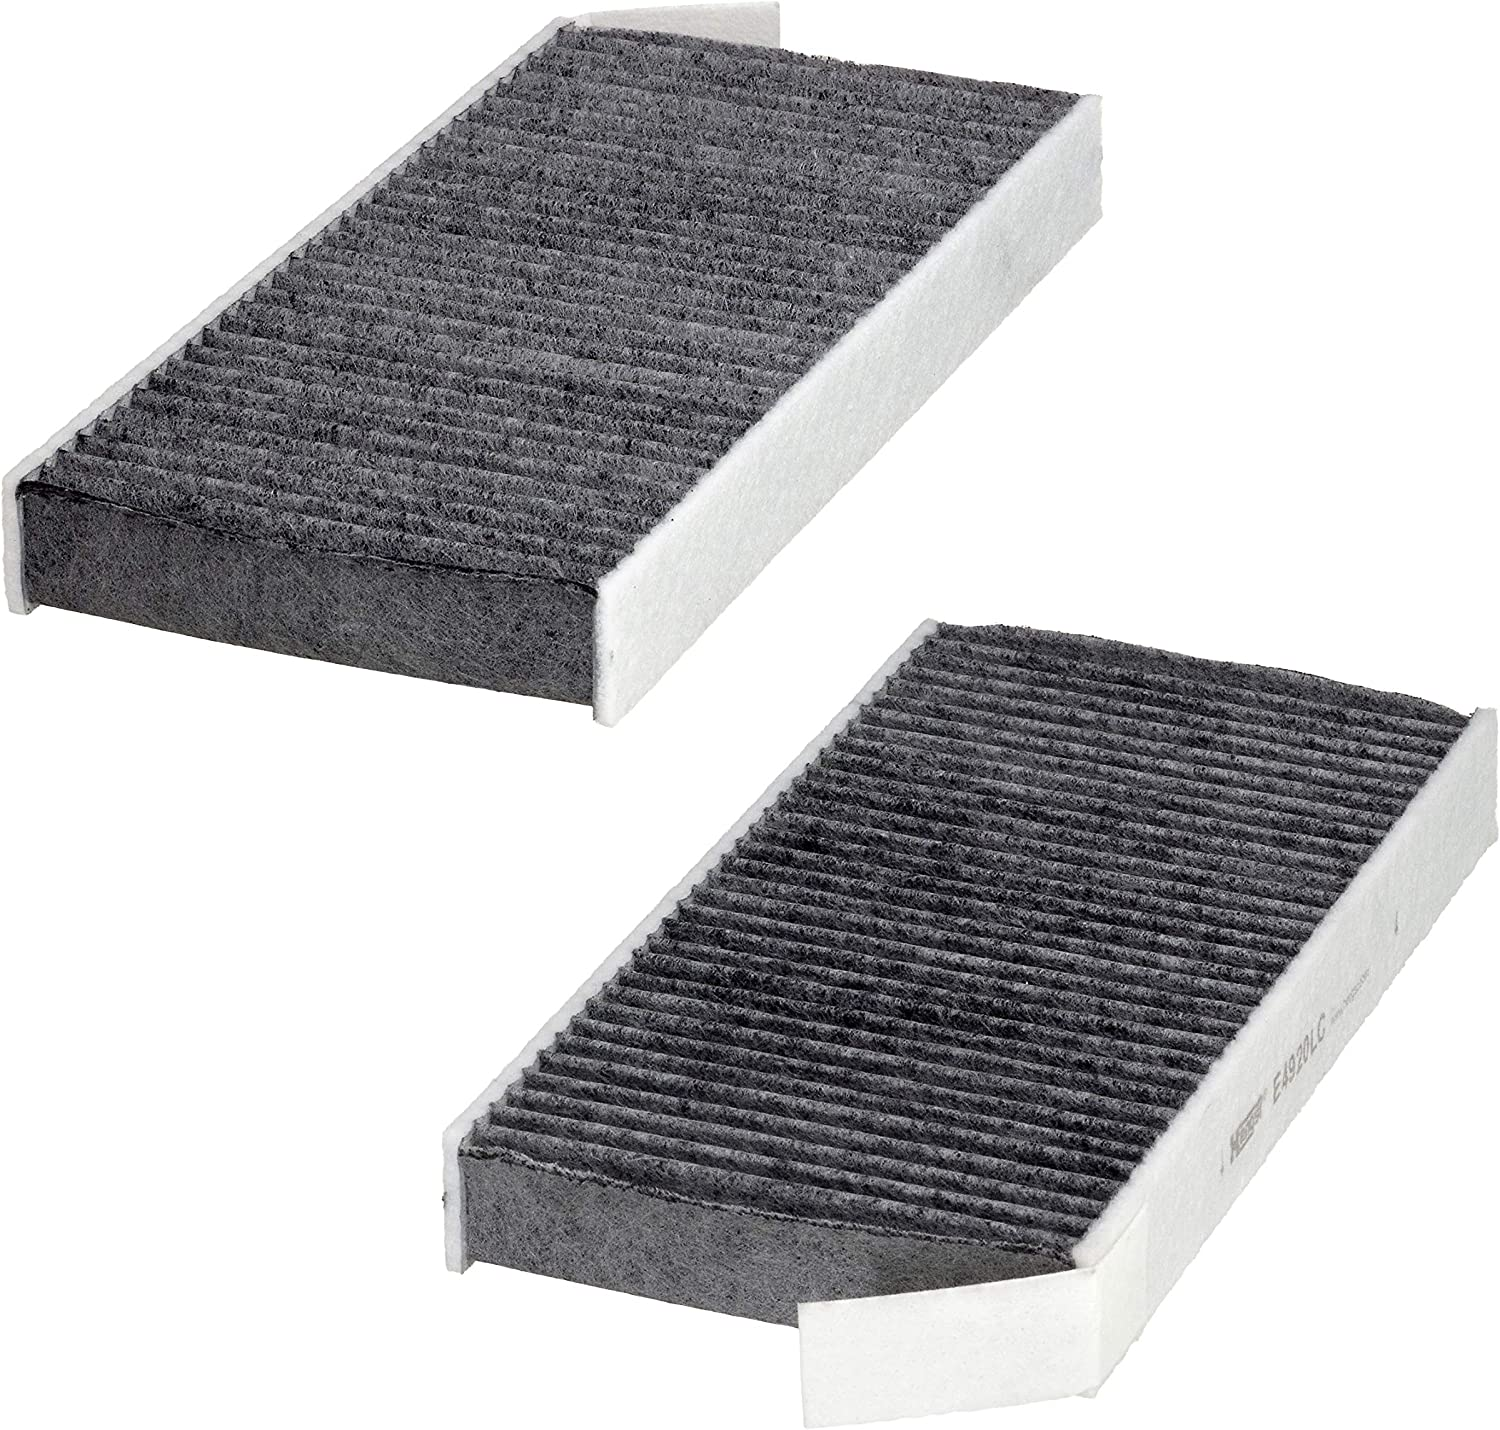 Hengst E4920lc 2 Cabin Filter Set Of 2 Auto